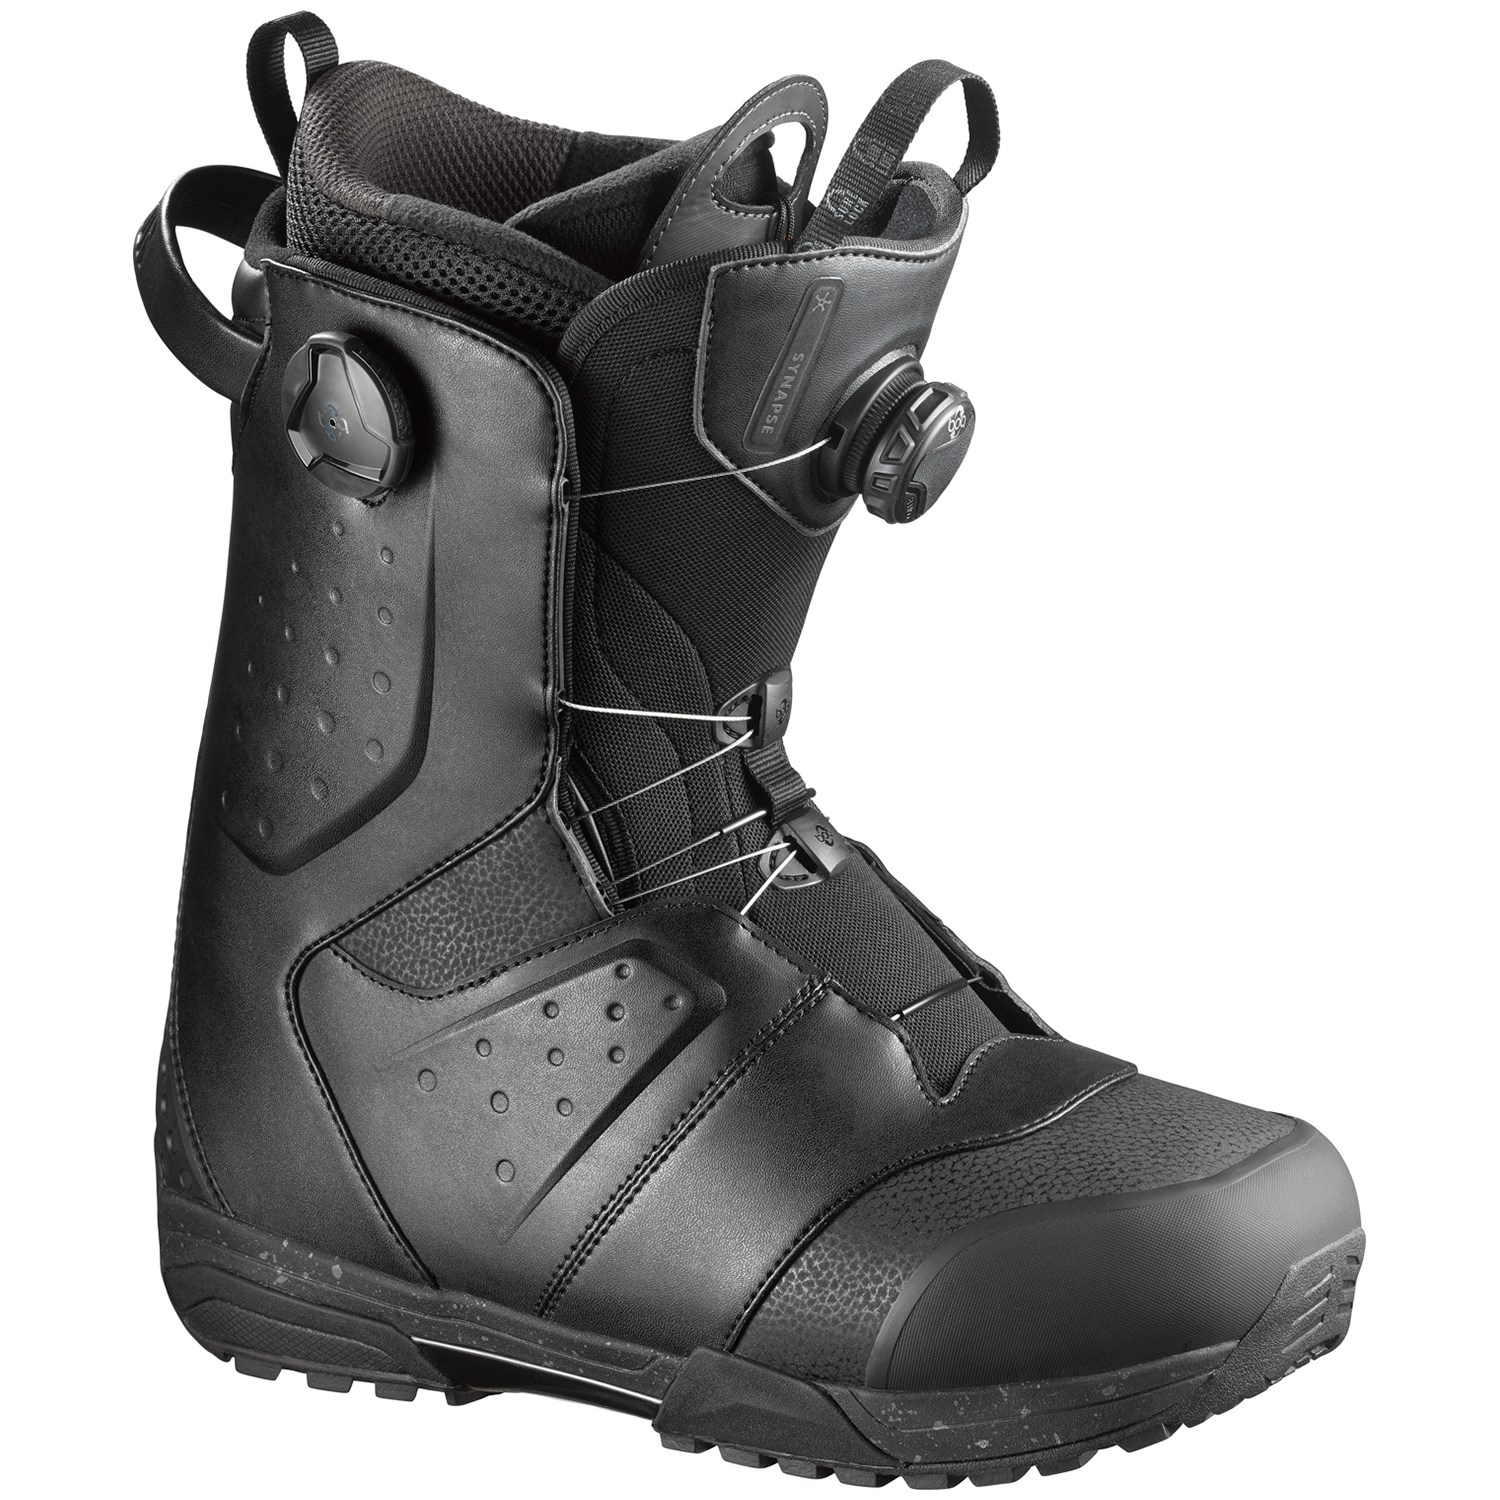 Snowboard Boots Boa - Image Collections Boot